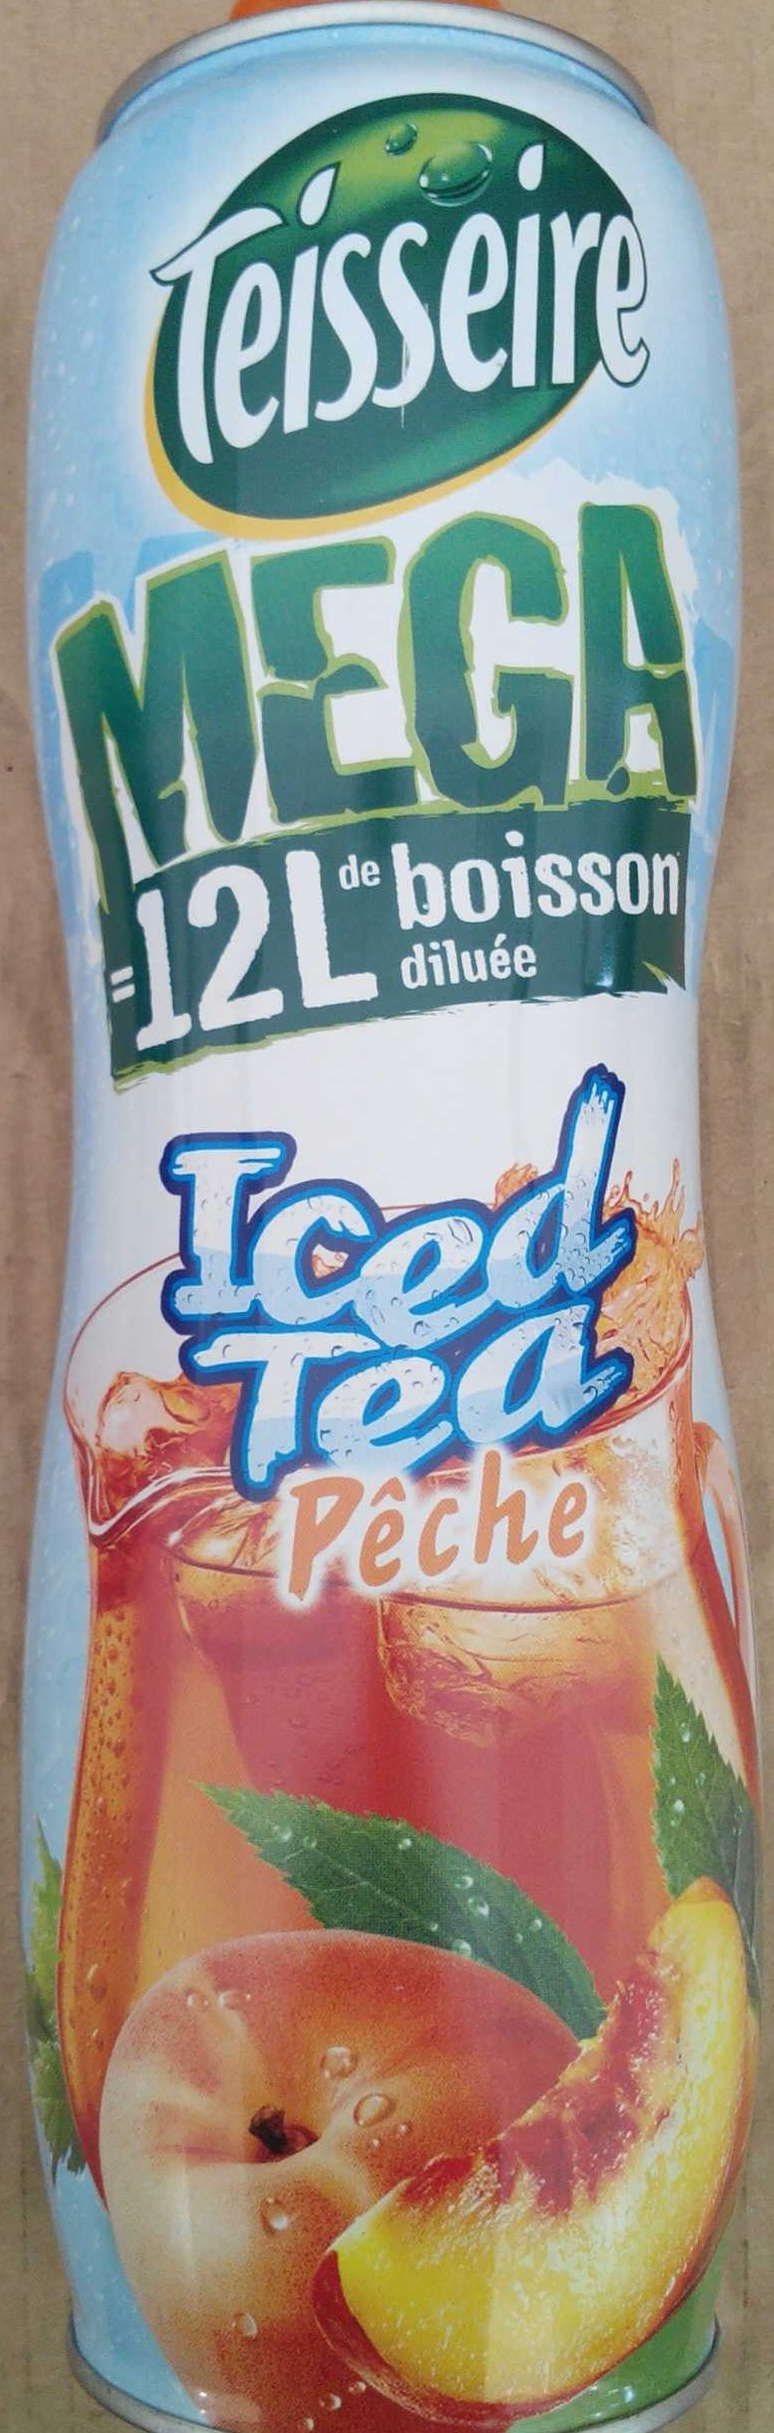 MEGA Iced Tea Pêche - Product